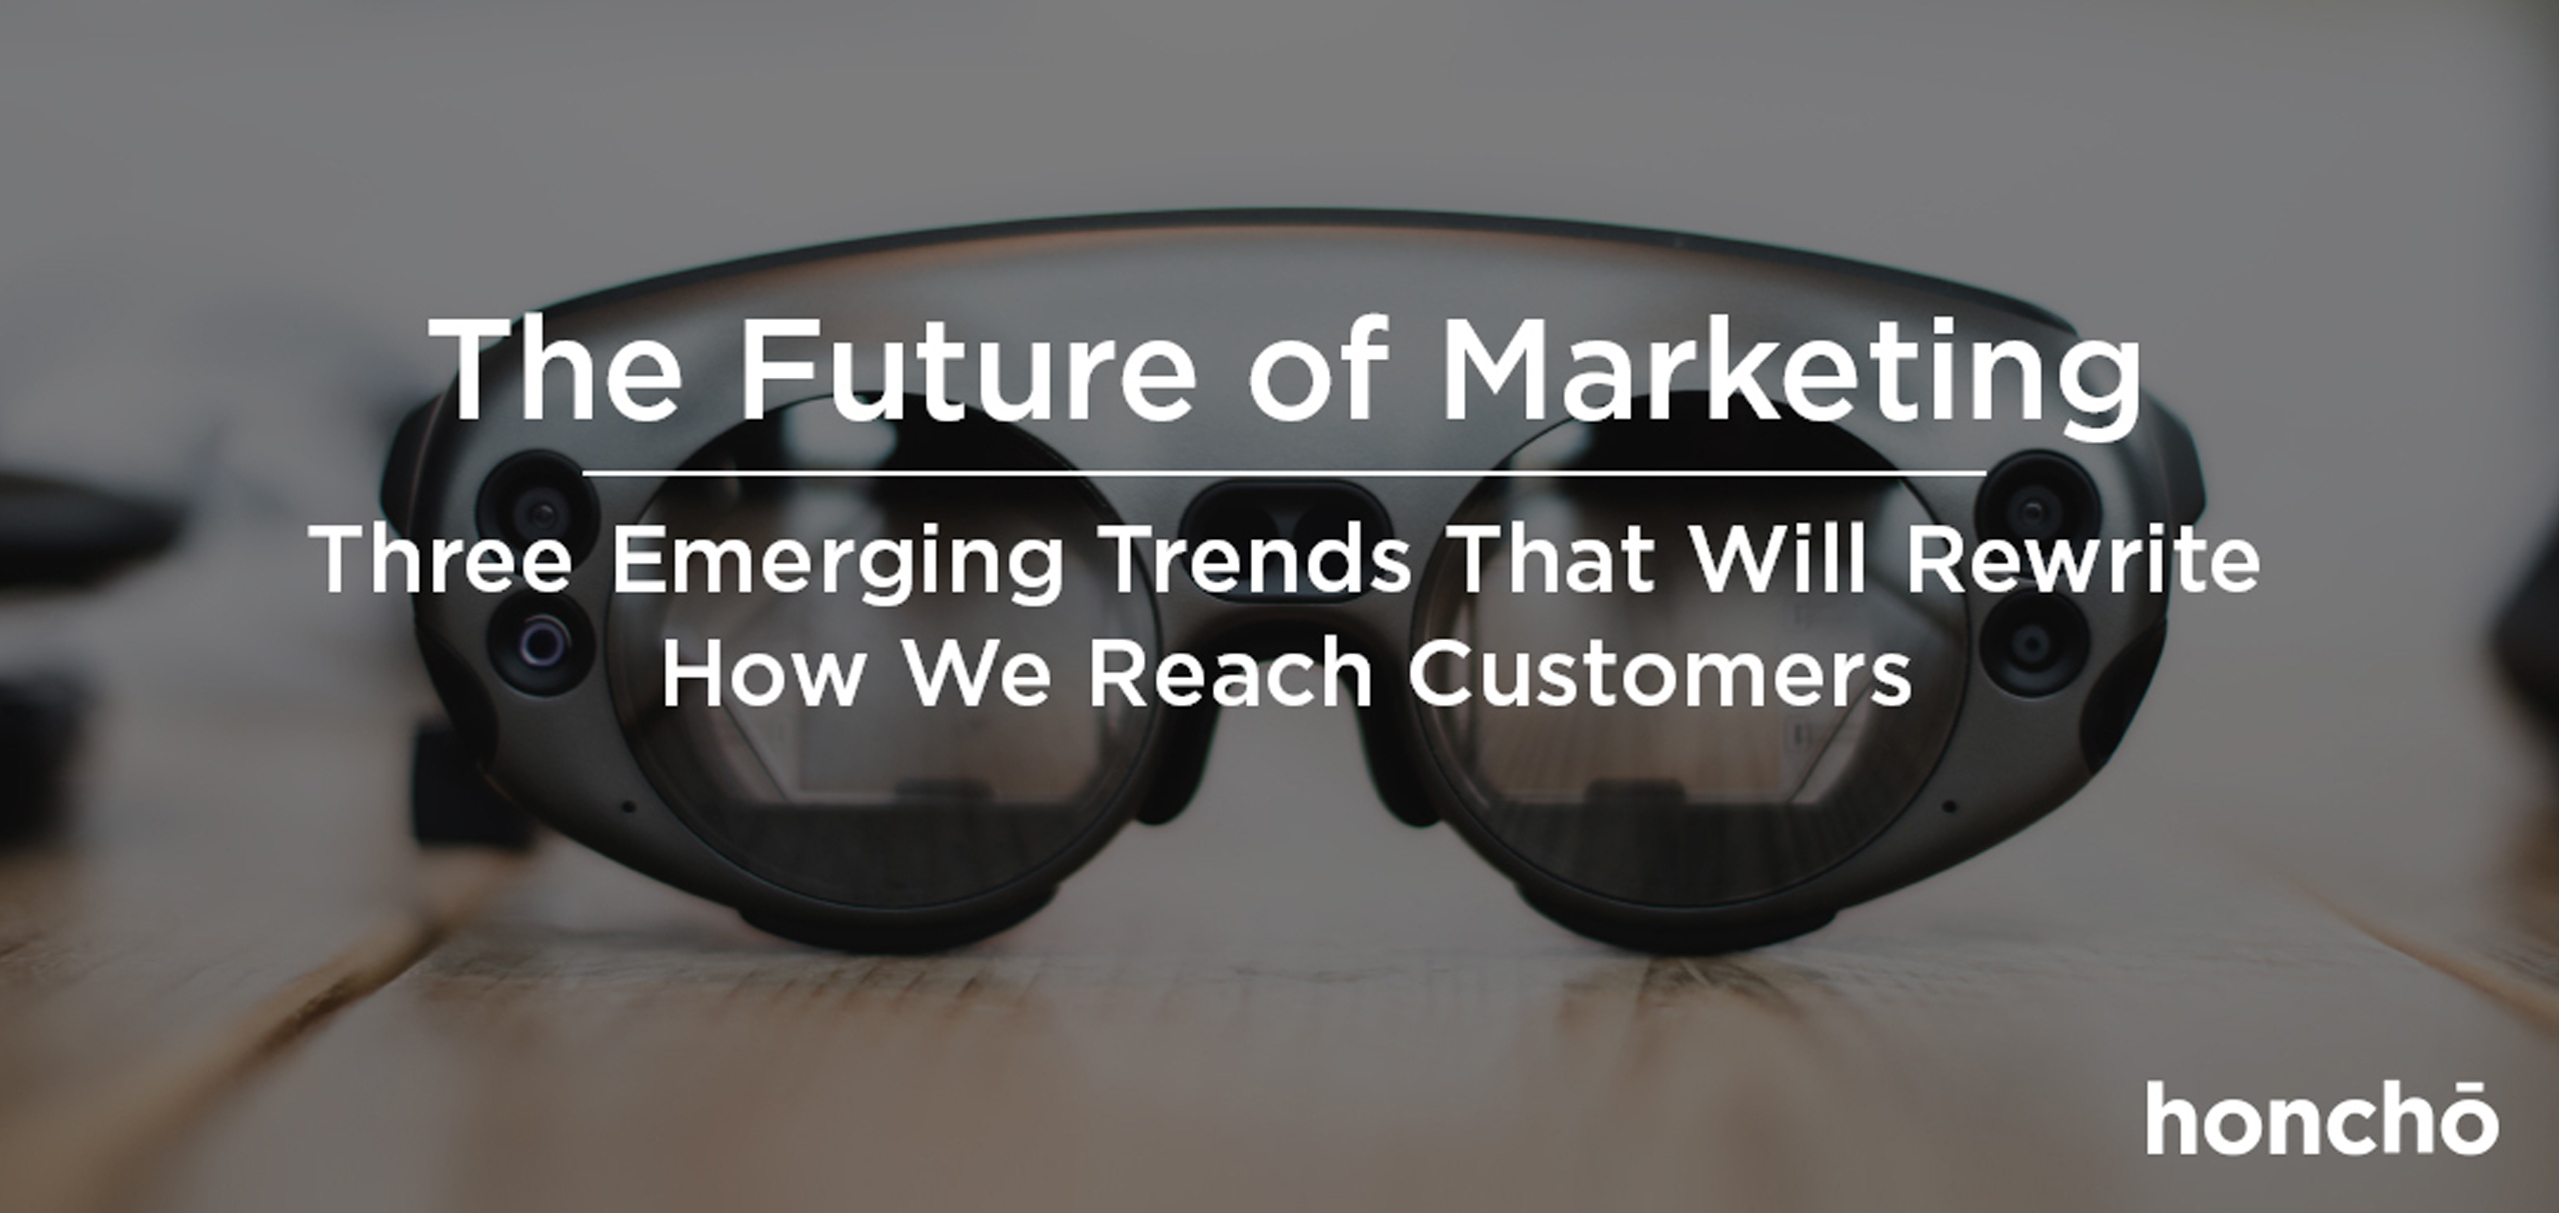 The Future of Marketing - three emerging trends that will rewrite how we reach customers